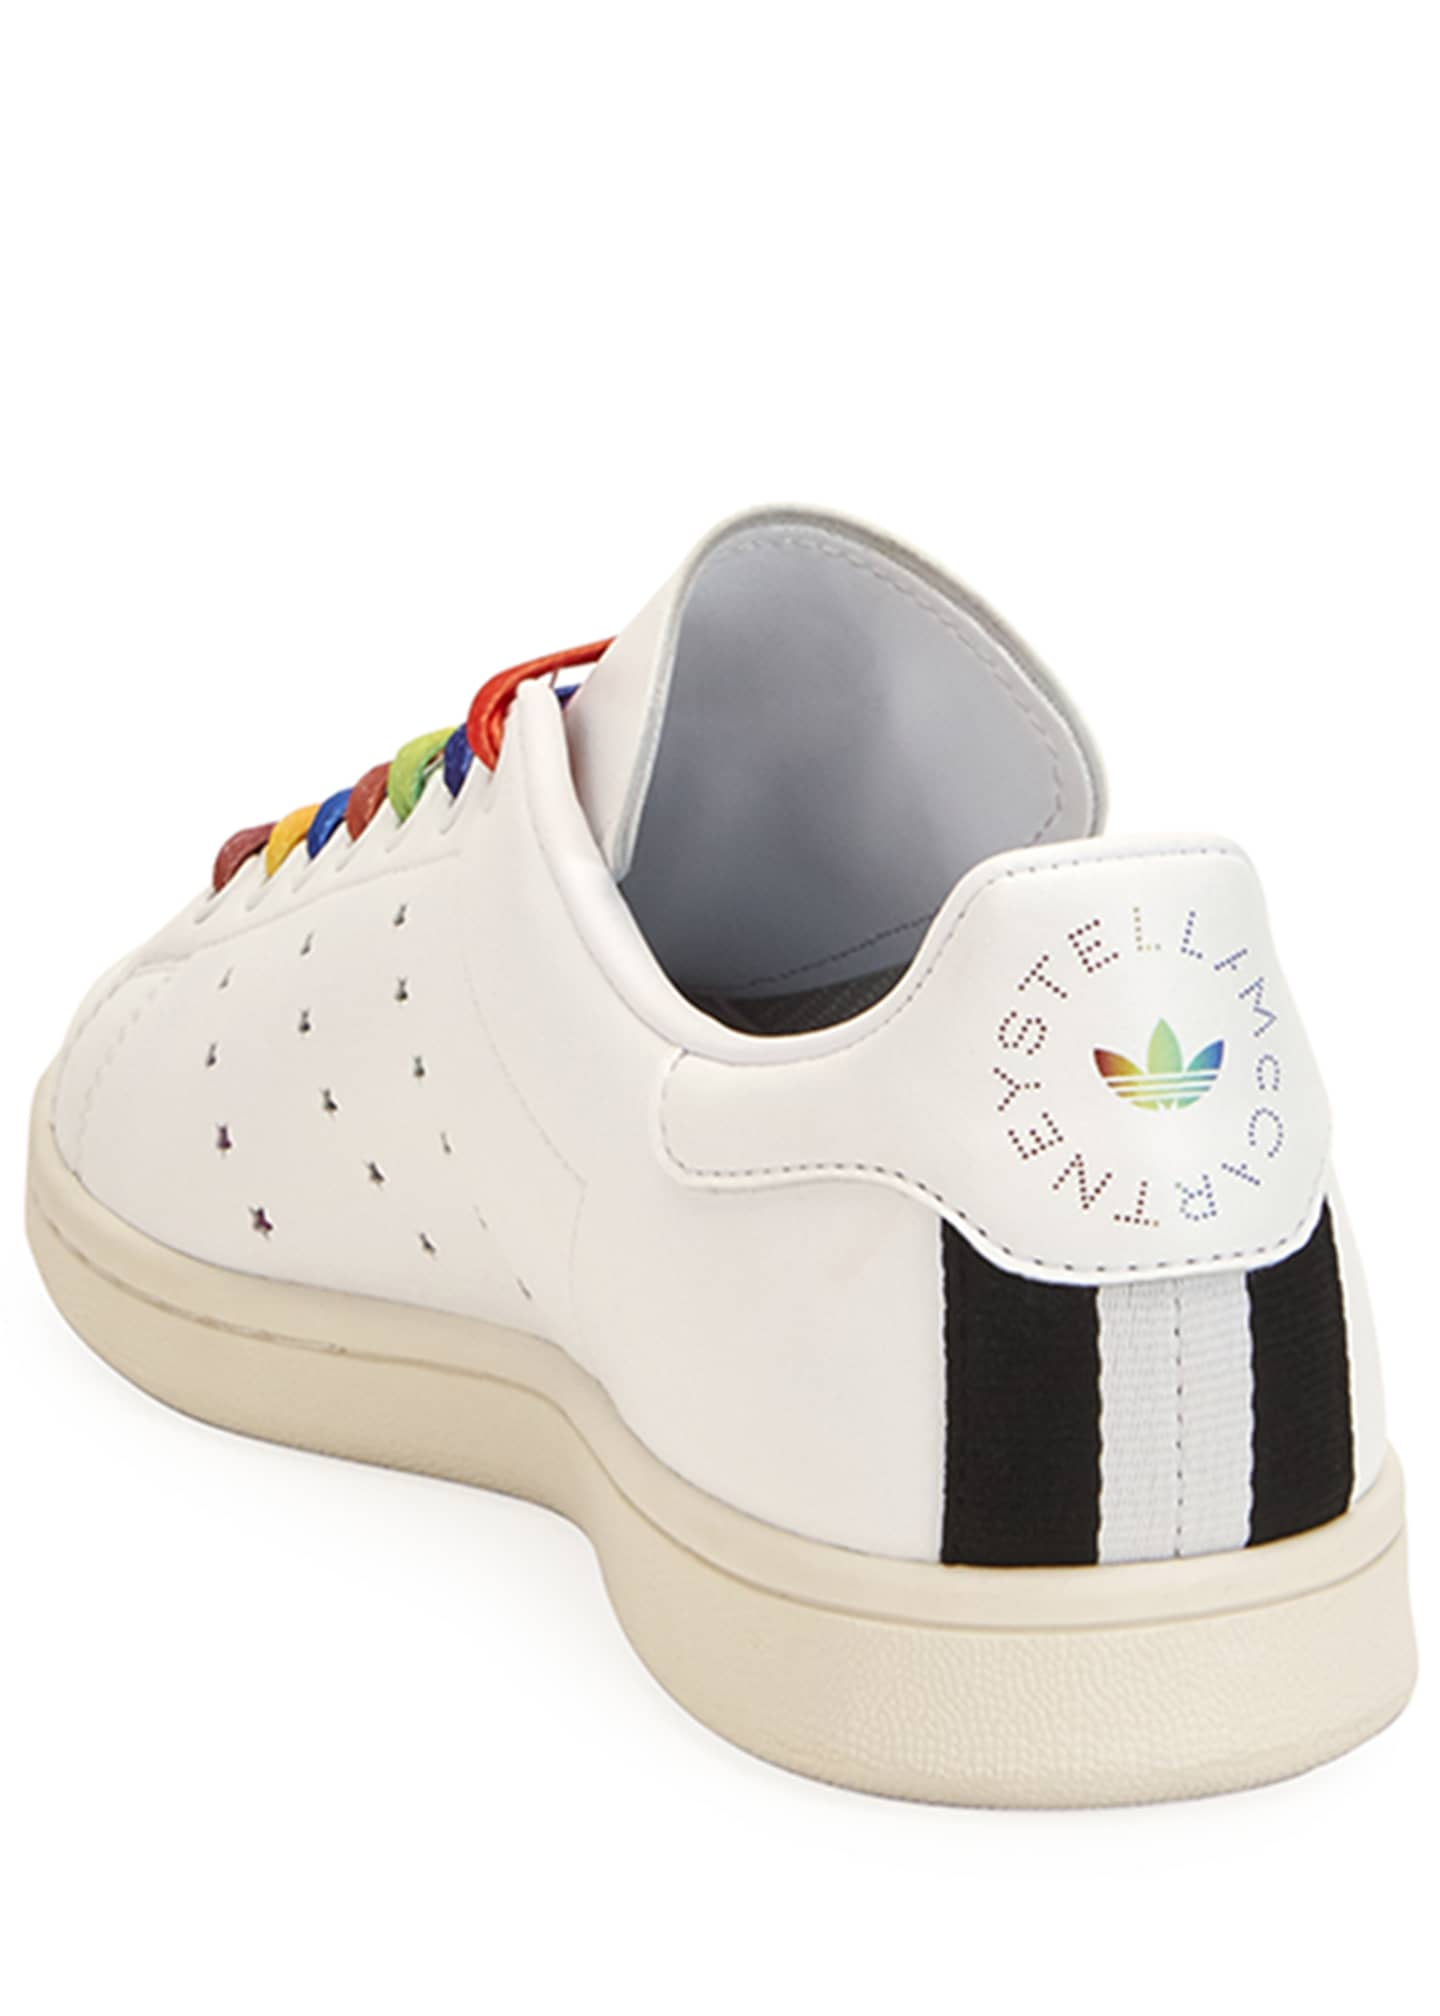 Image 3 of 3: Stan Smith Sneakers with Rainbow Laces